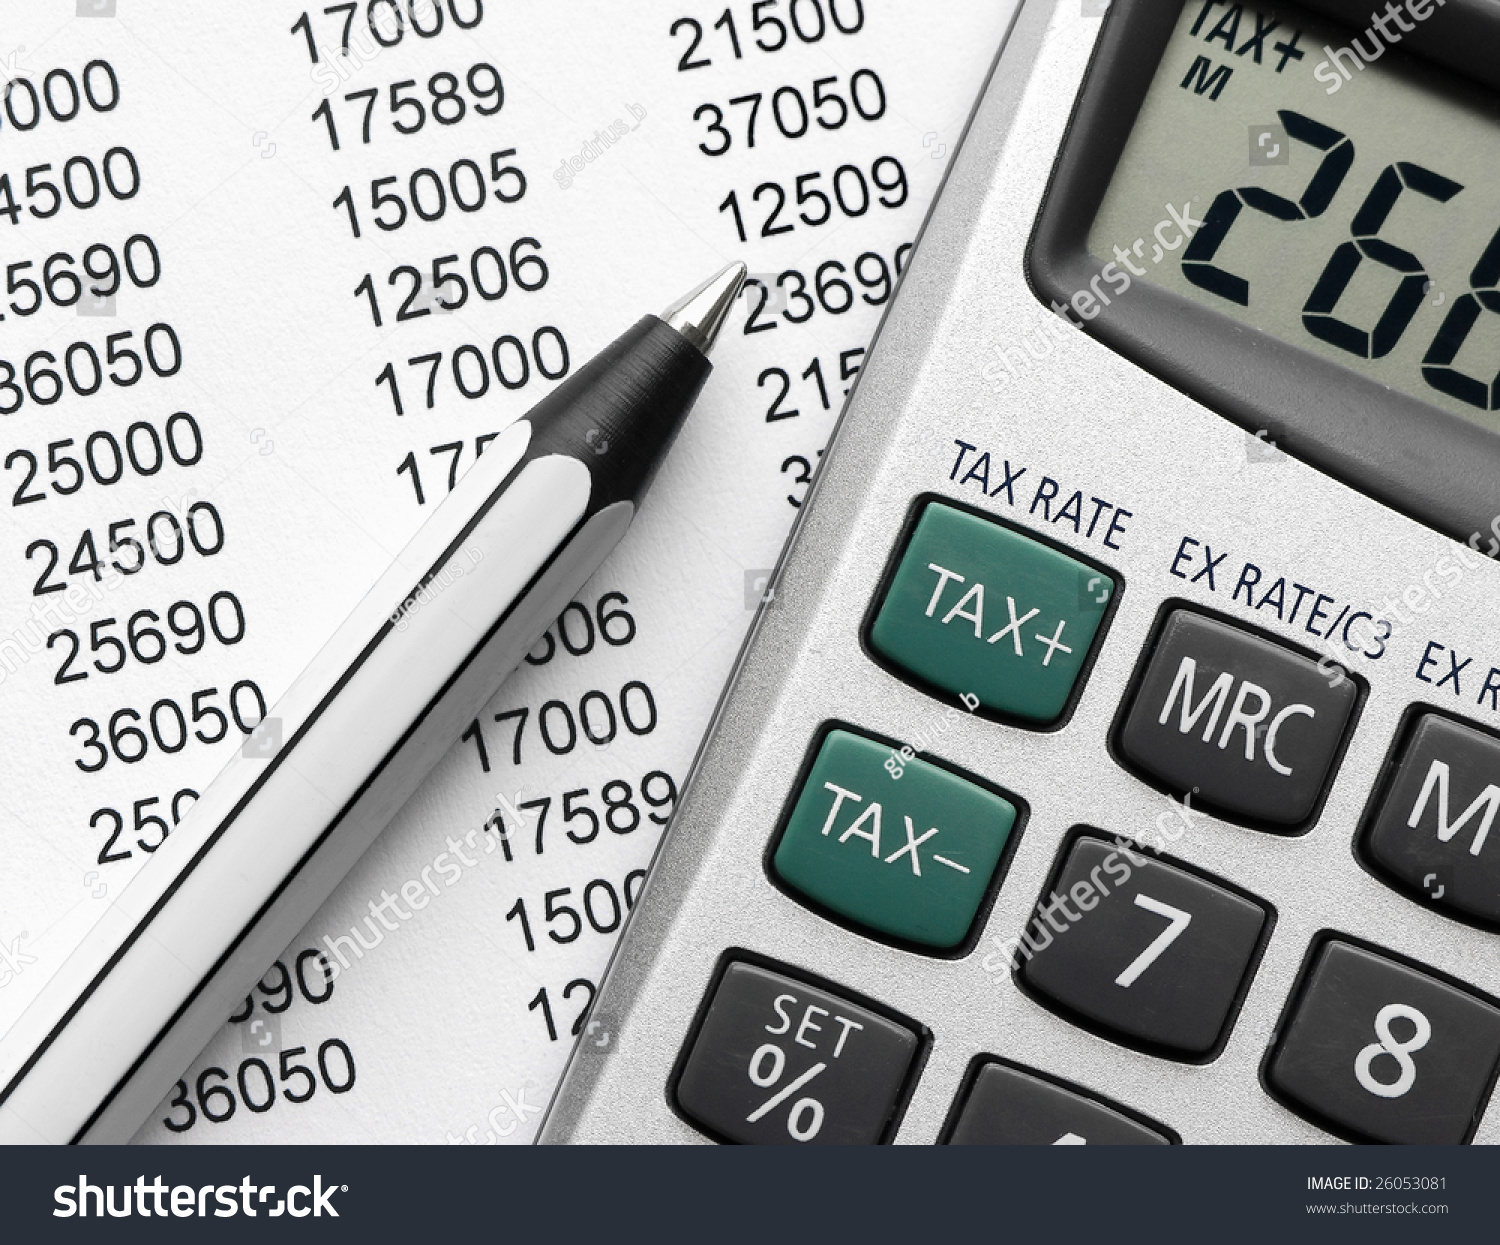 Tax calculator stock options